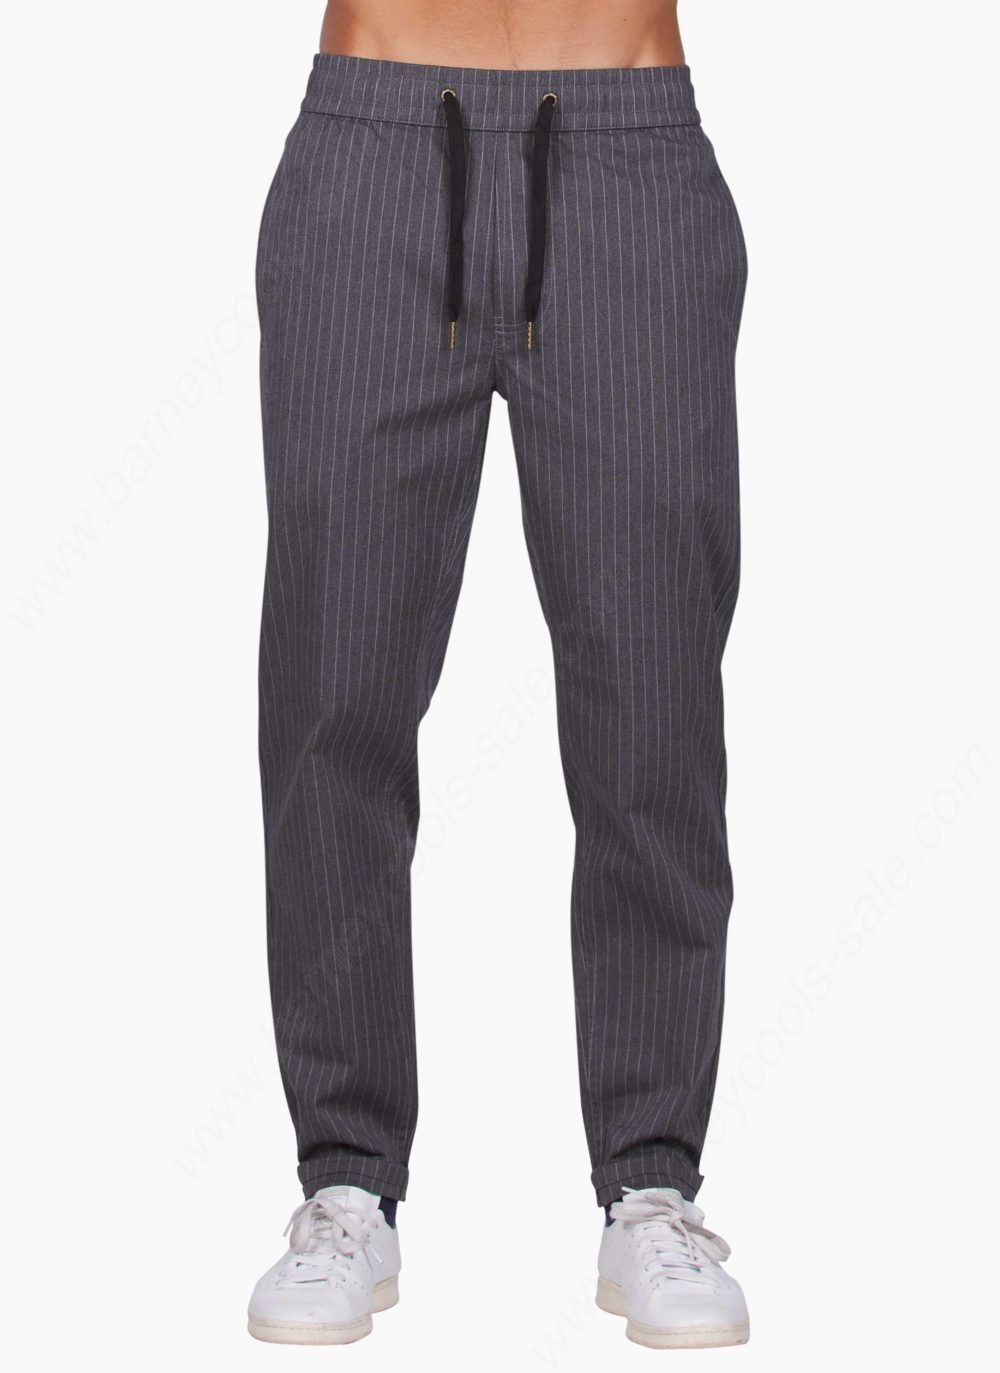 Barney Cools Men B.rabbit Chino (Carrot Fit) Charcoal Stripe Pants - Barney Cools Men B.rabbit Chino (Carrot Fit) Charcoal Stripe Pants